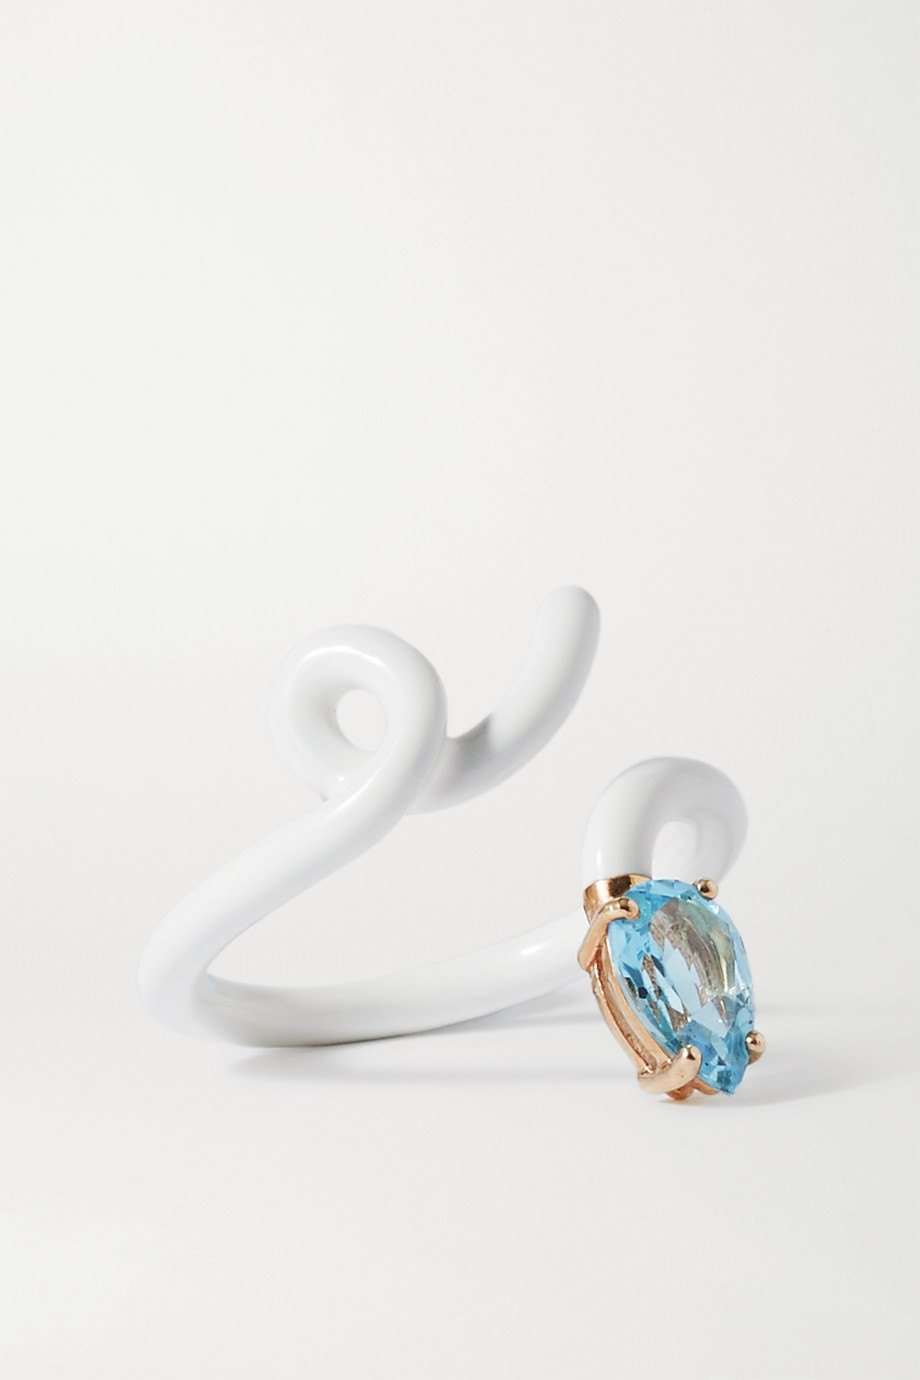 Bea Bongiasca Tendril gold, enamel and topaz ring